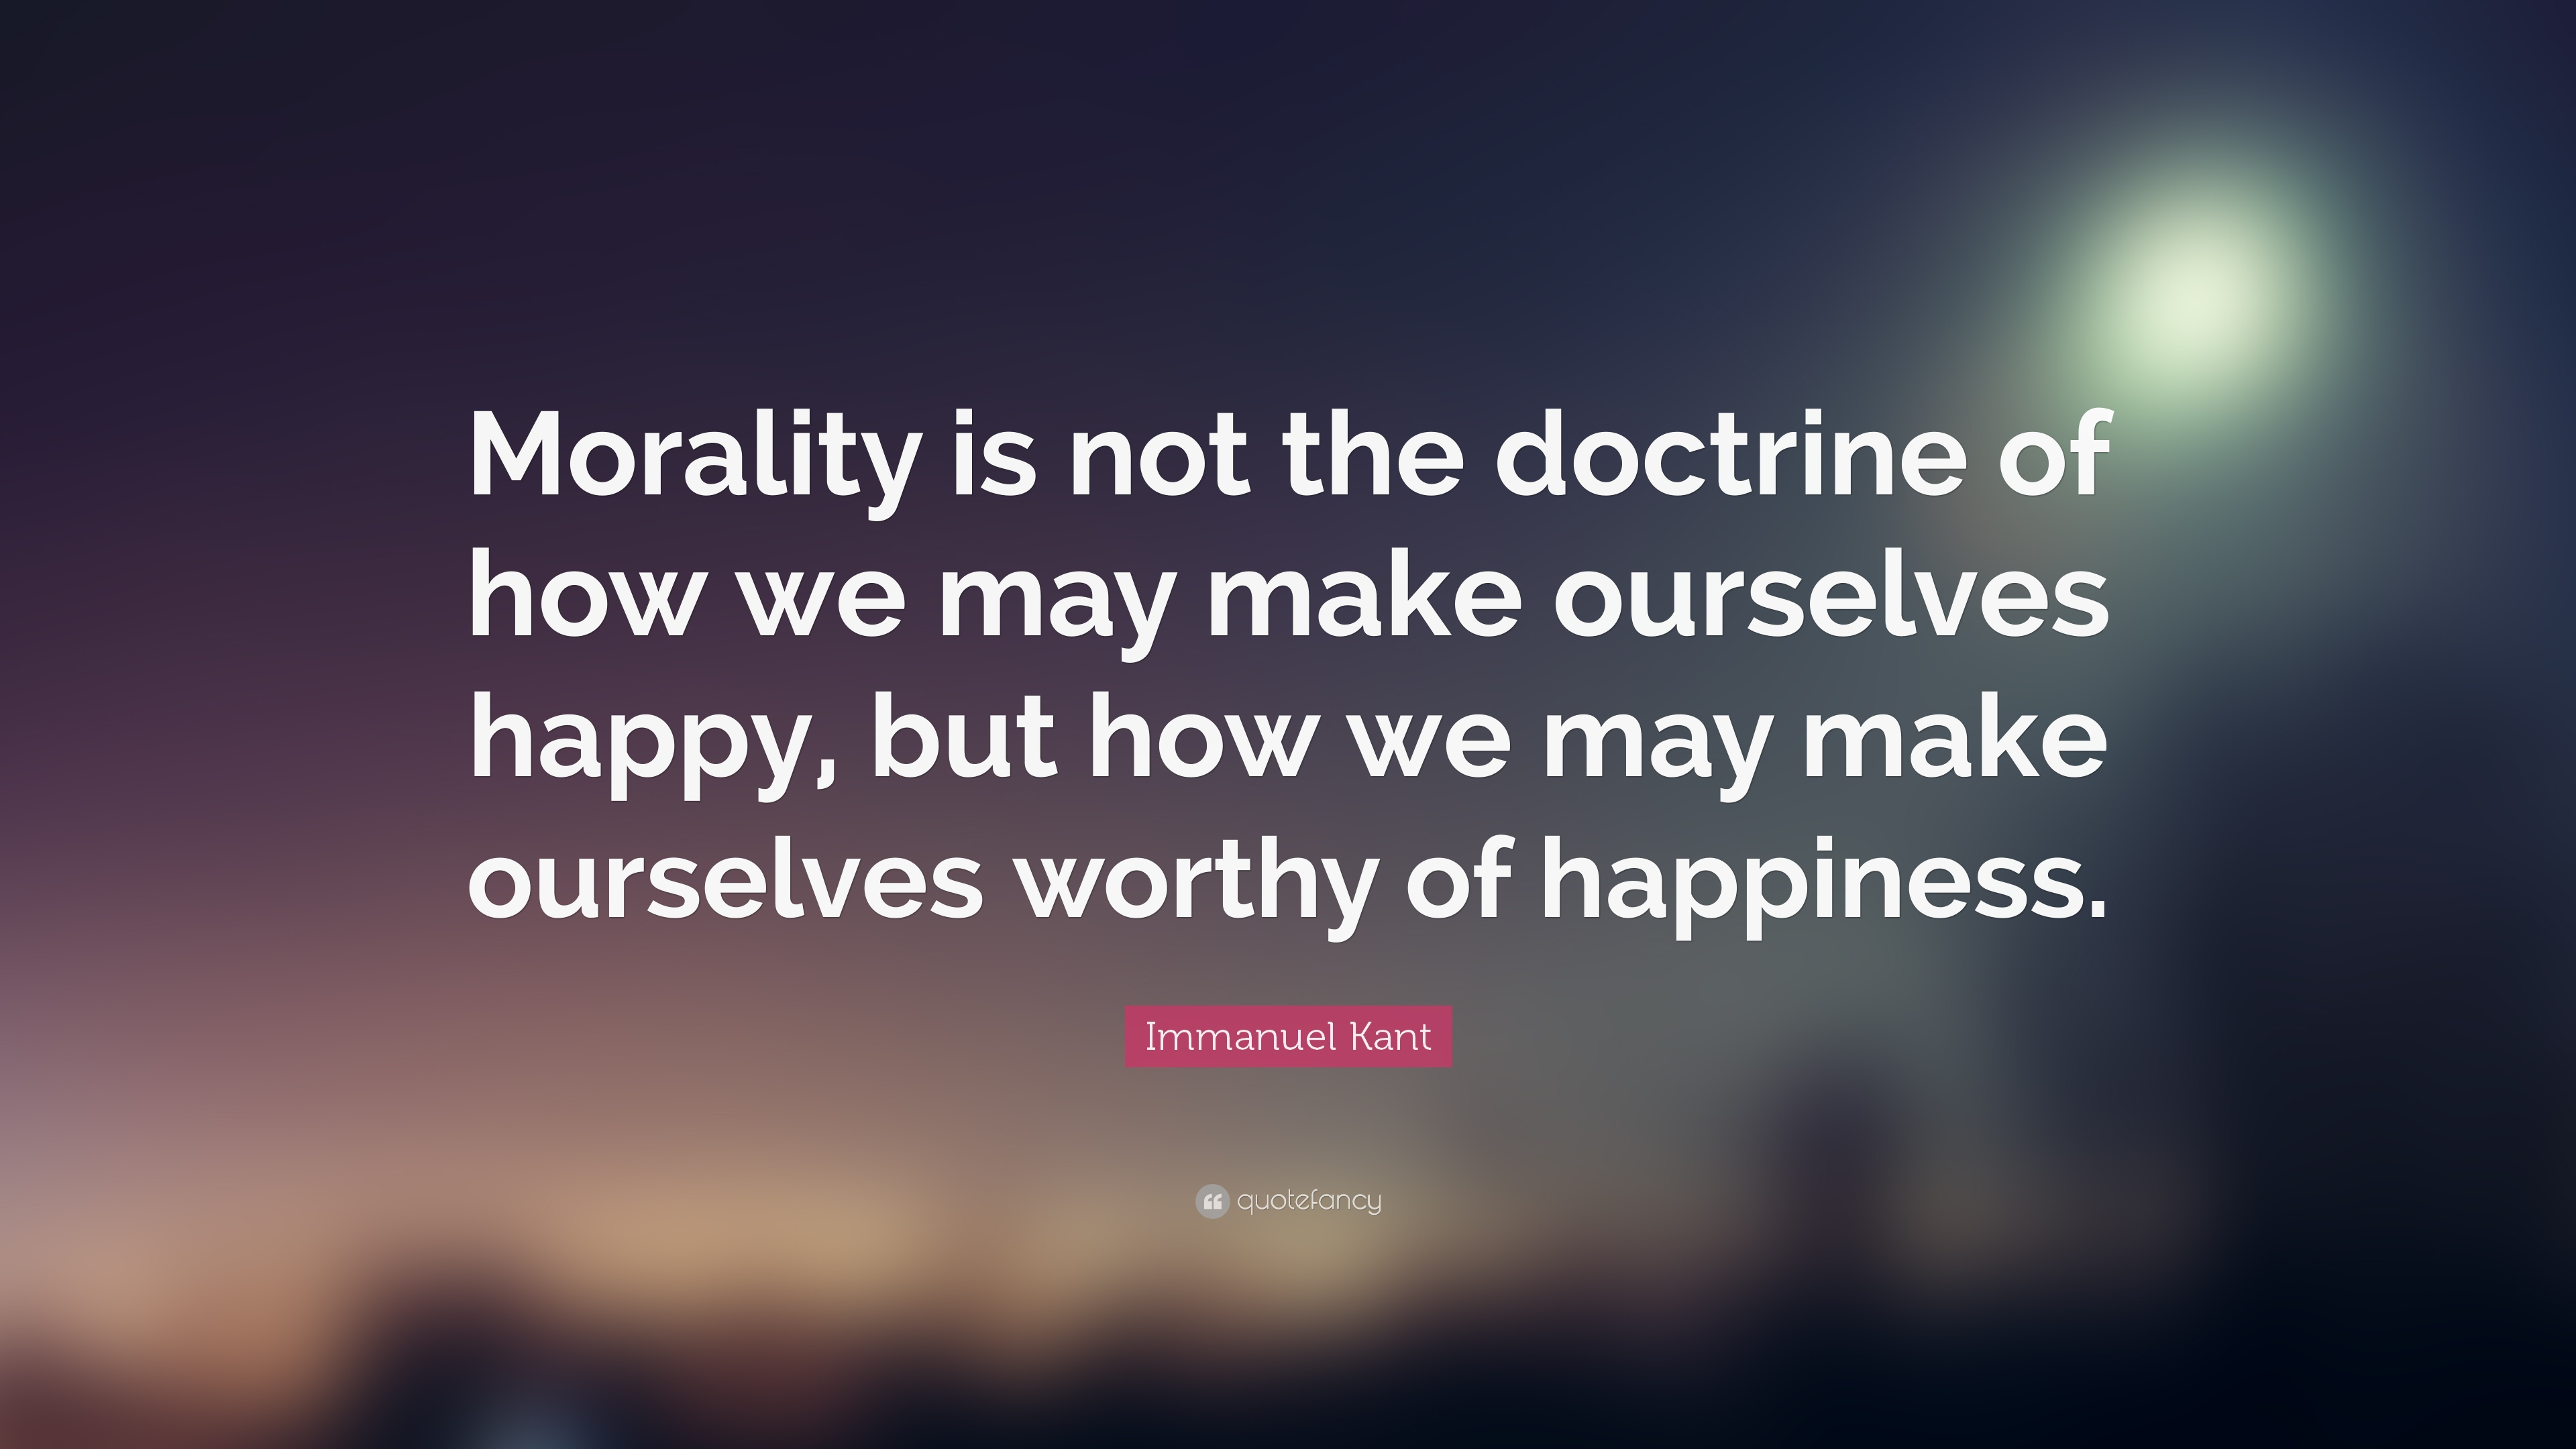 for kant what is the relationship of morality to happiness